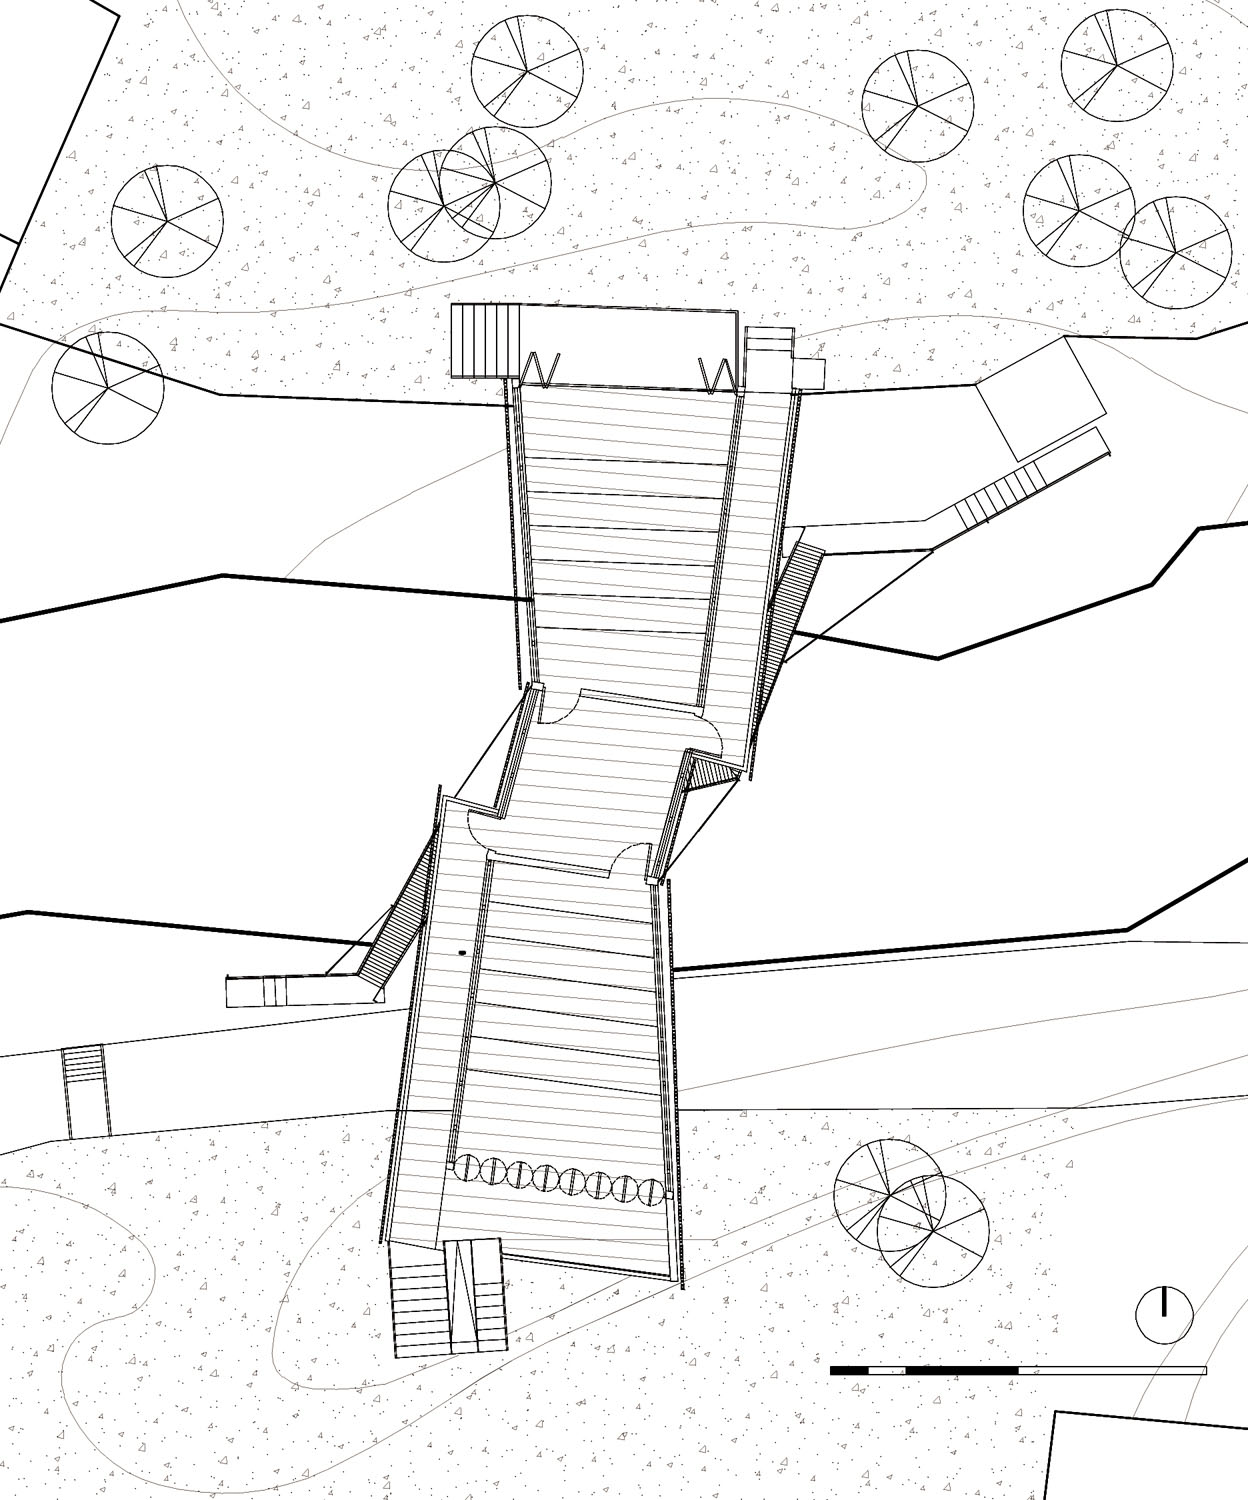 http://www.archdaily.com/wp-content/uploads/2010/01/1262610105-school-plan.jpg